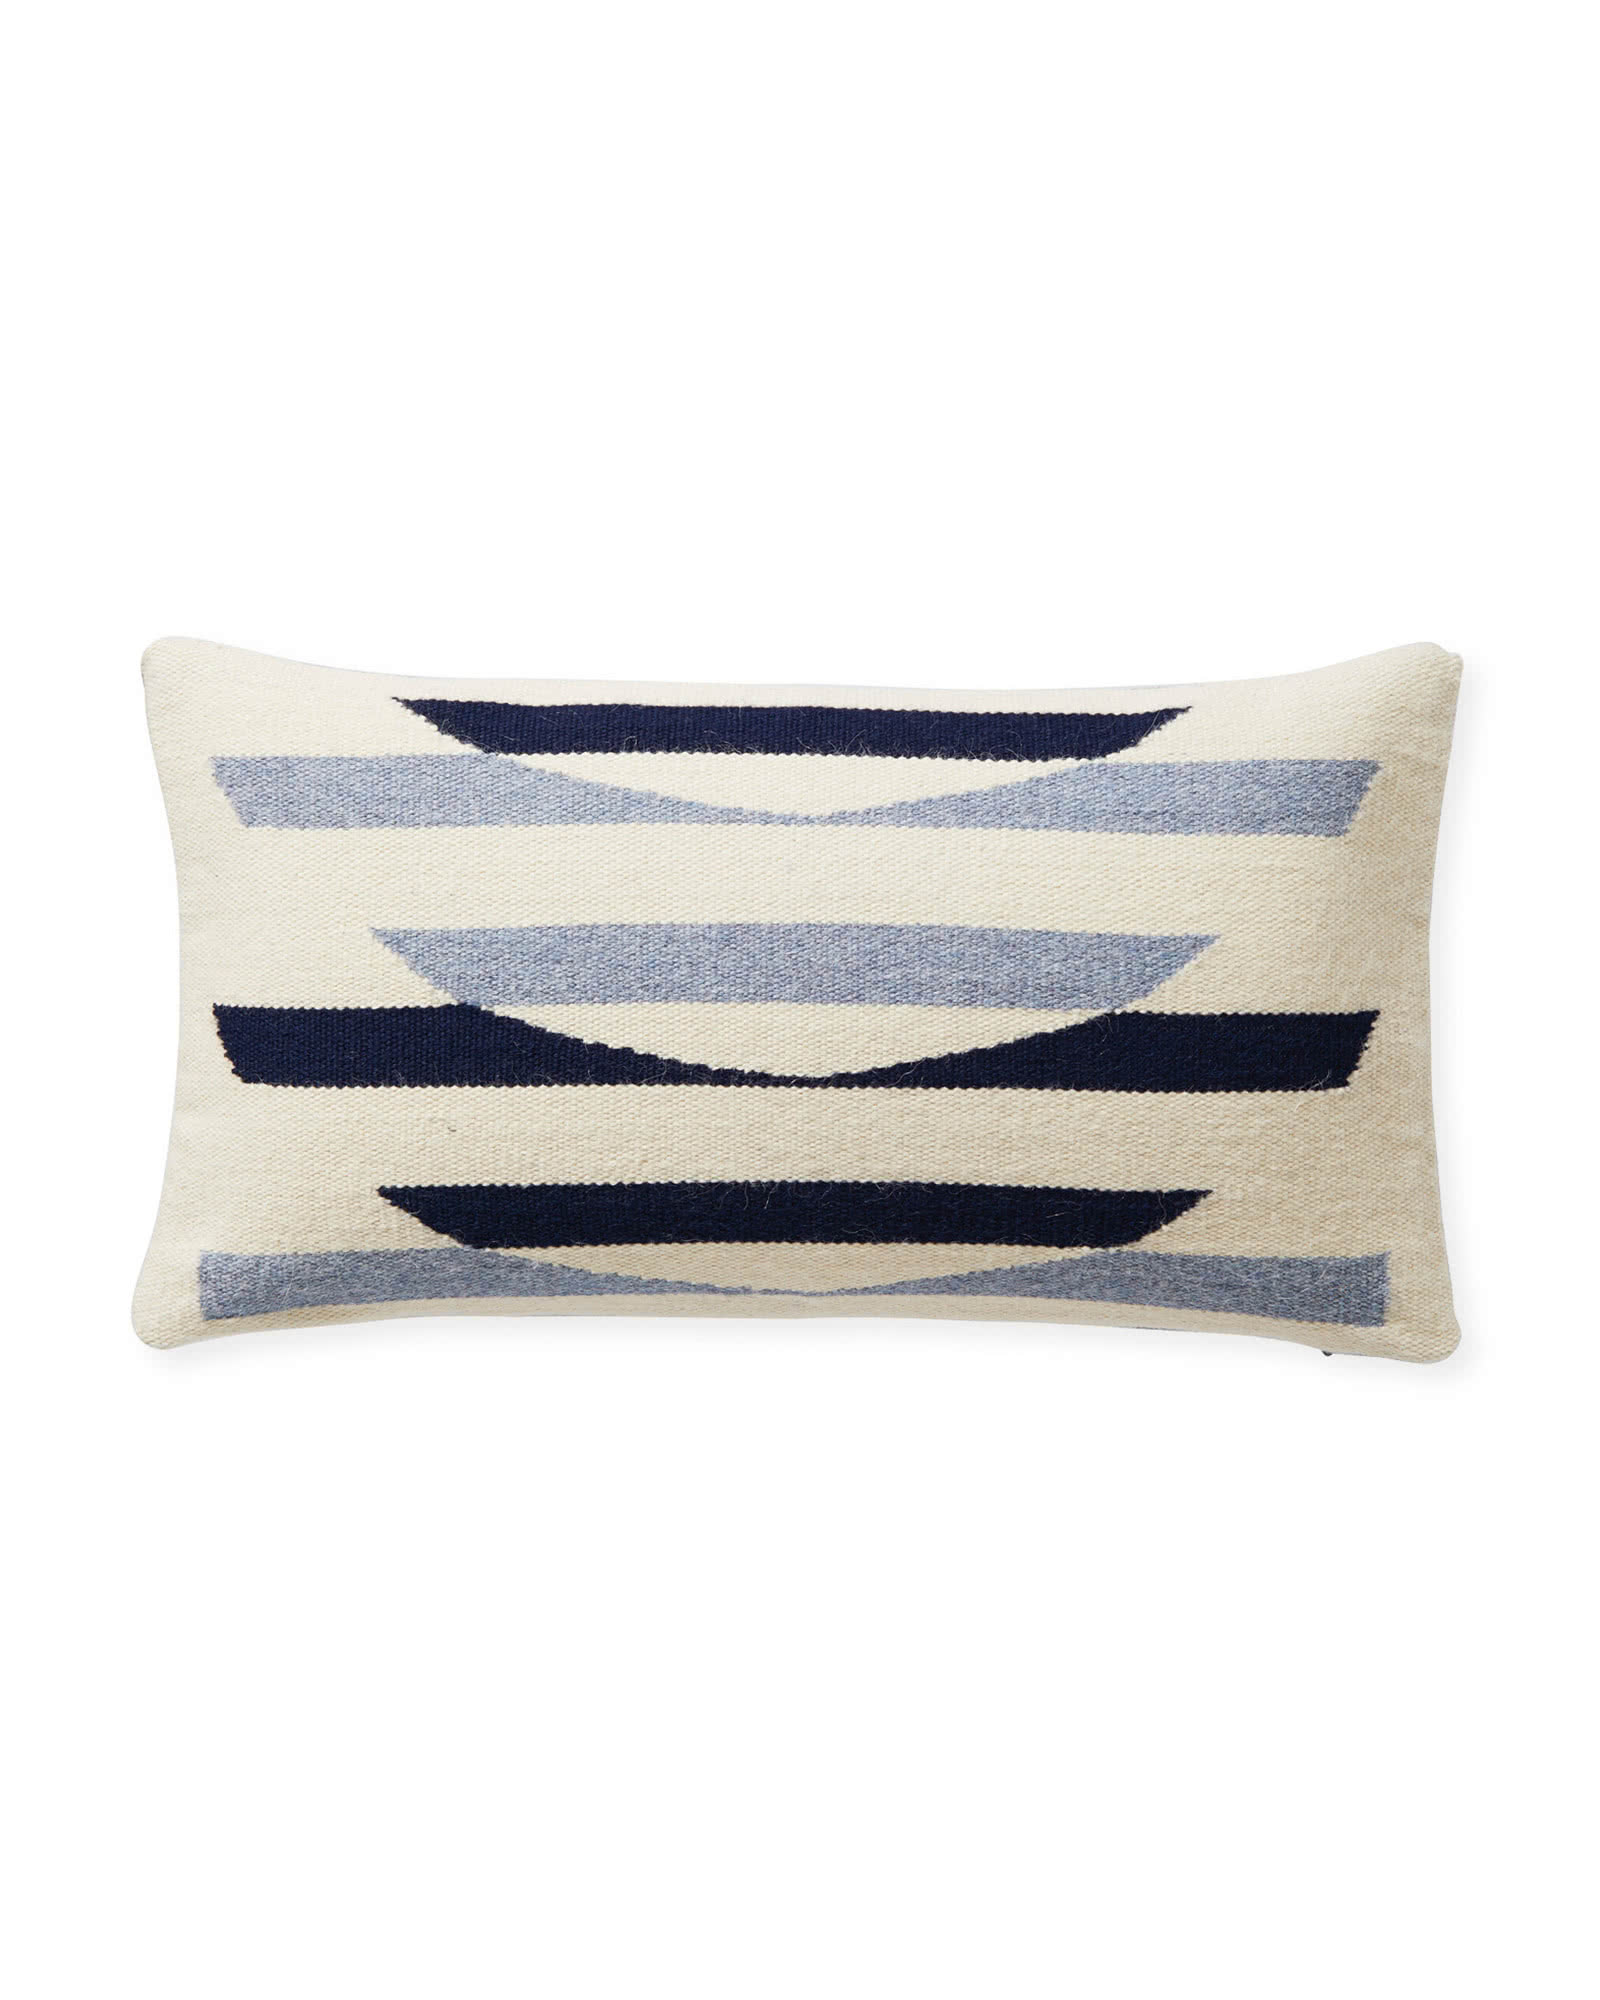 Rosewood Pillow Cover,